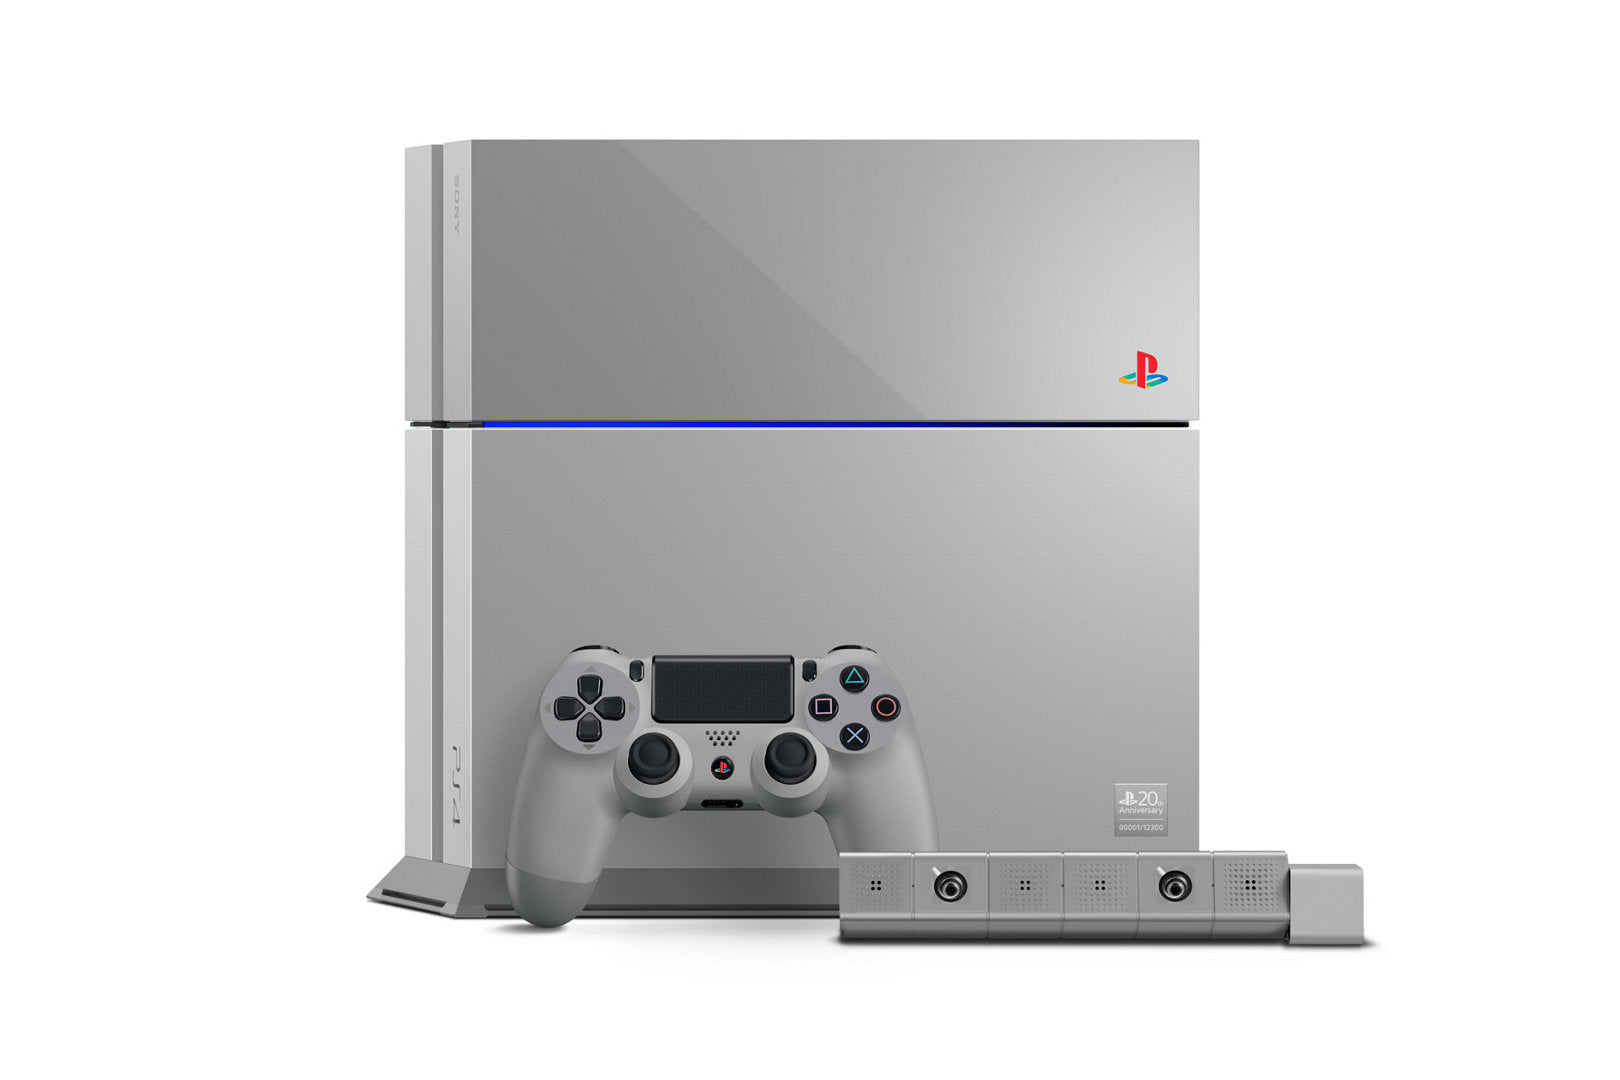 RetroPixl Sony Playstation 4 (PS4) 20th Anniversary Limited Edition